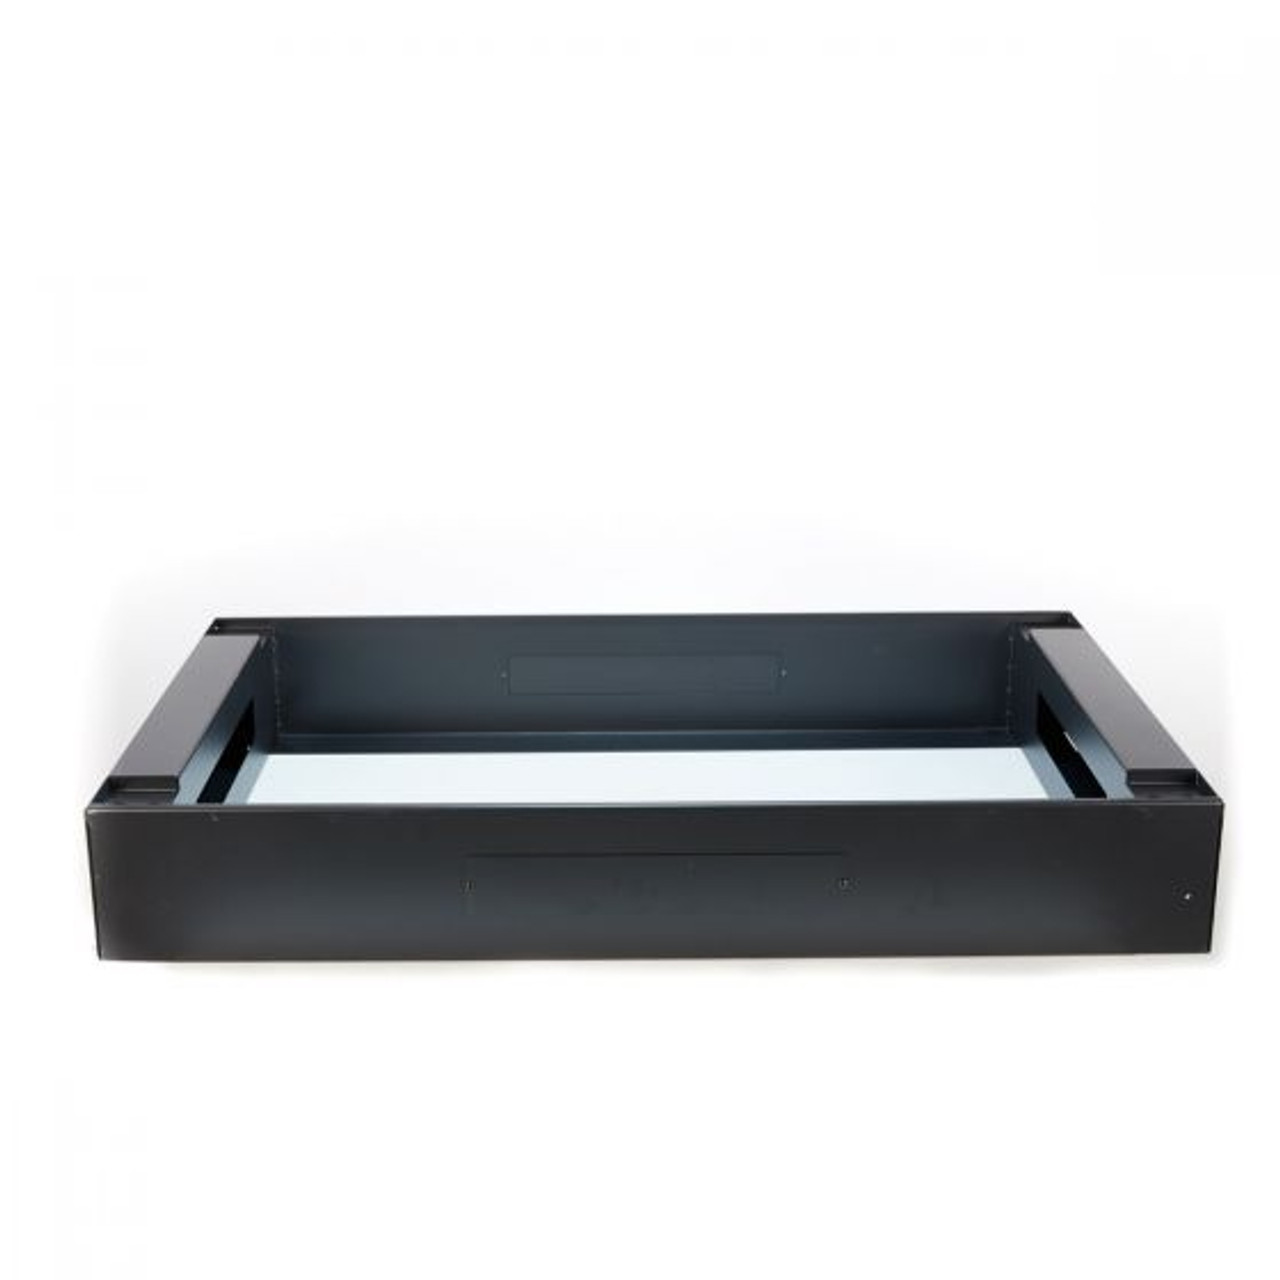 4Cabling 150mm High Floor Mount Plinth suitable for 600mm x 600mm